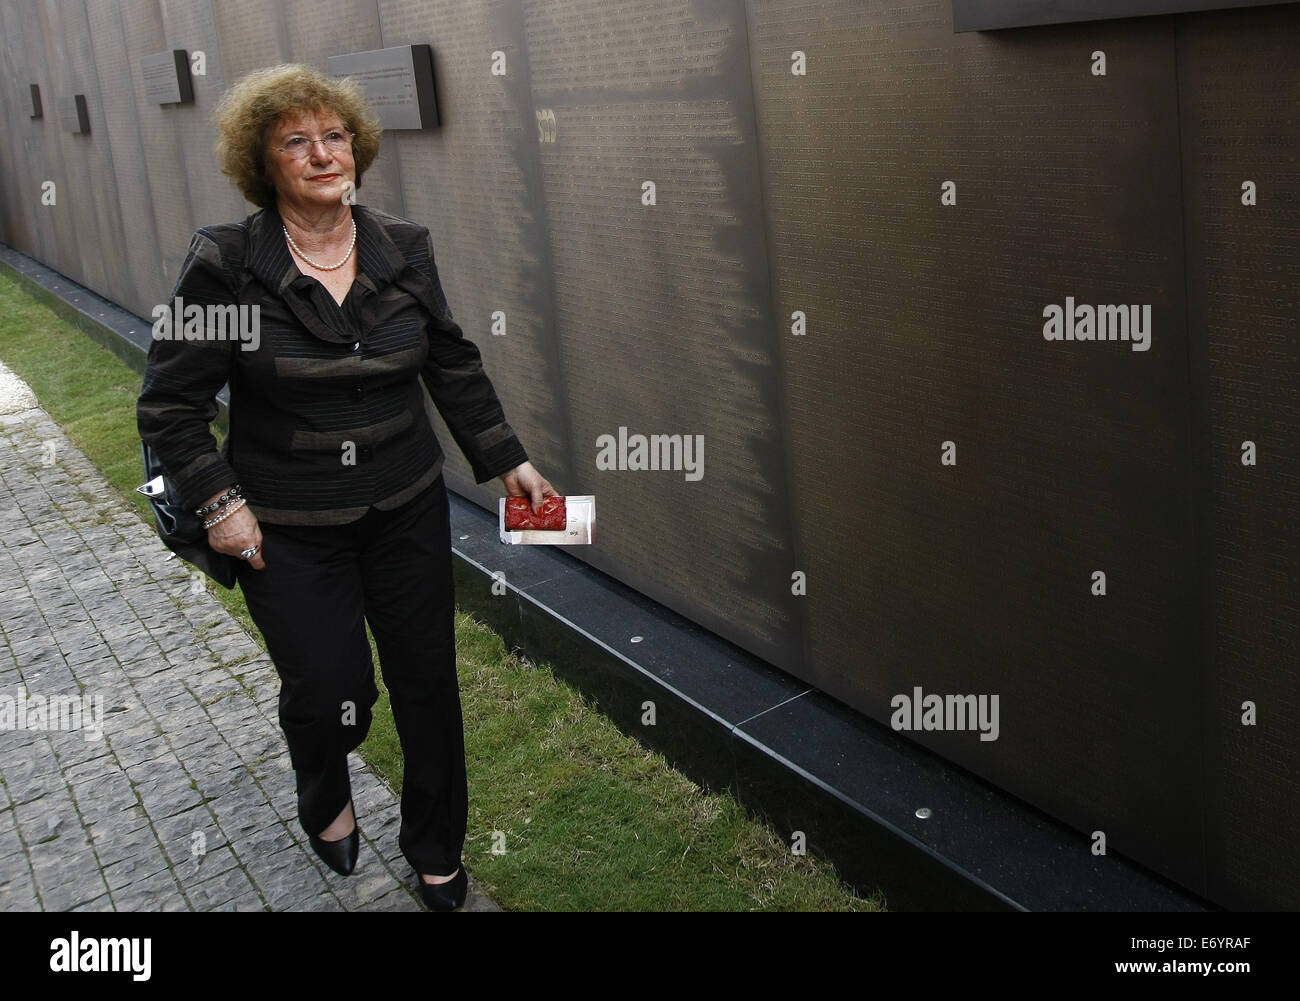 Shanghai. 2nd Sept, 2014. Sonja Muehlberger walks along a copper wall at the Shanghai Jewish Refugee Museum, in - Stock Image